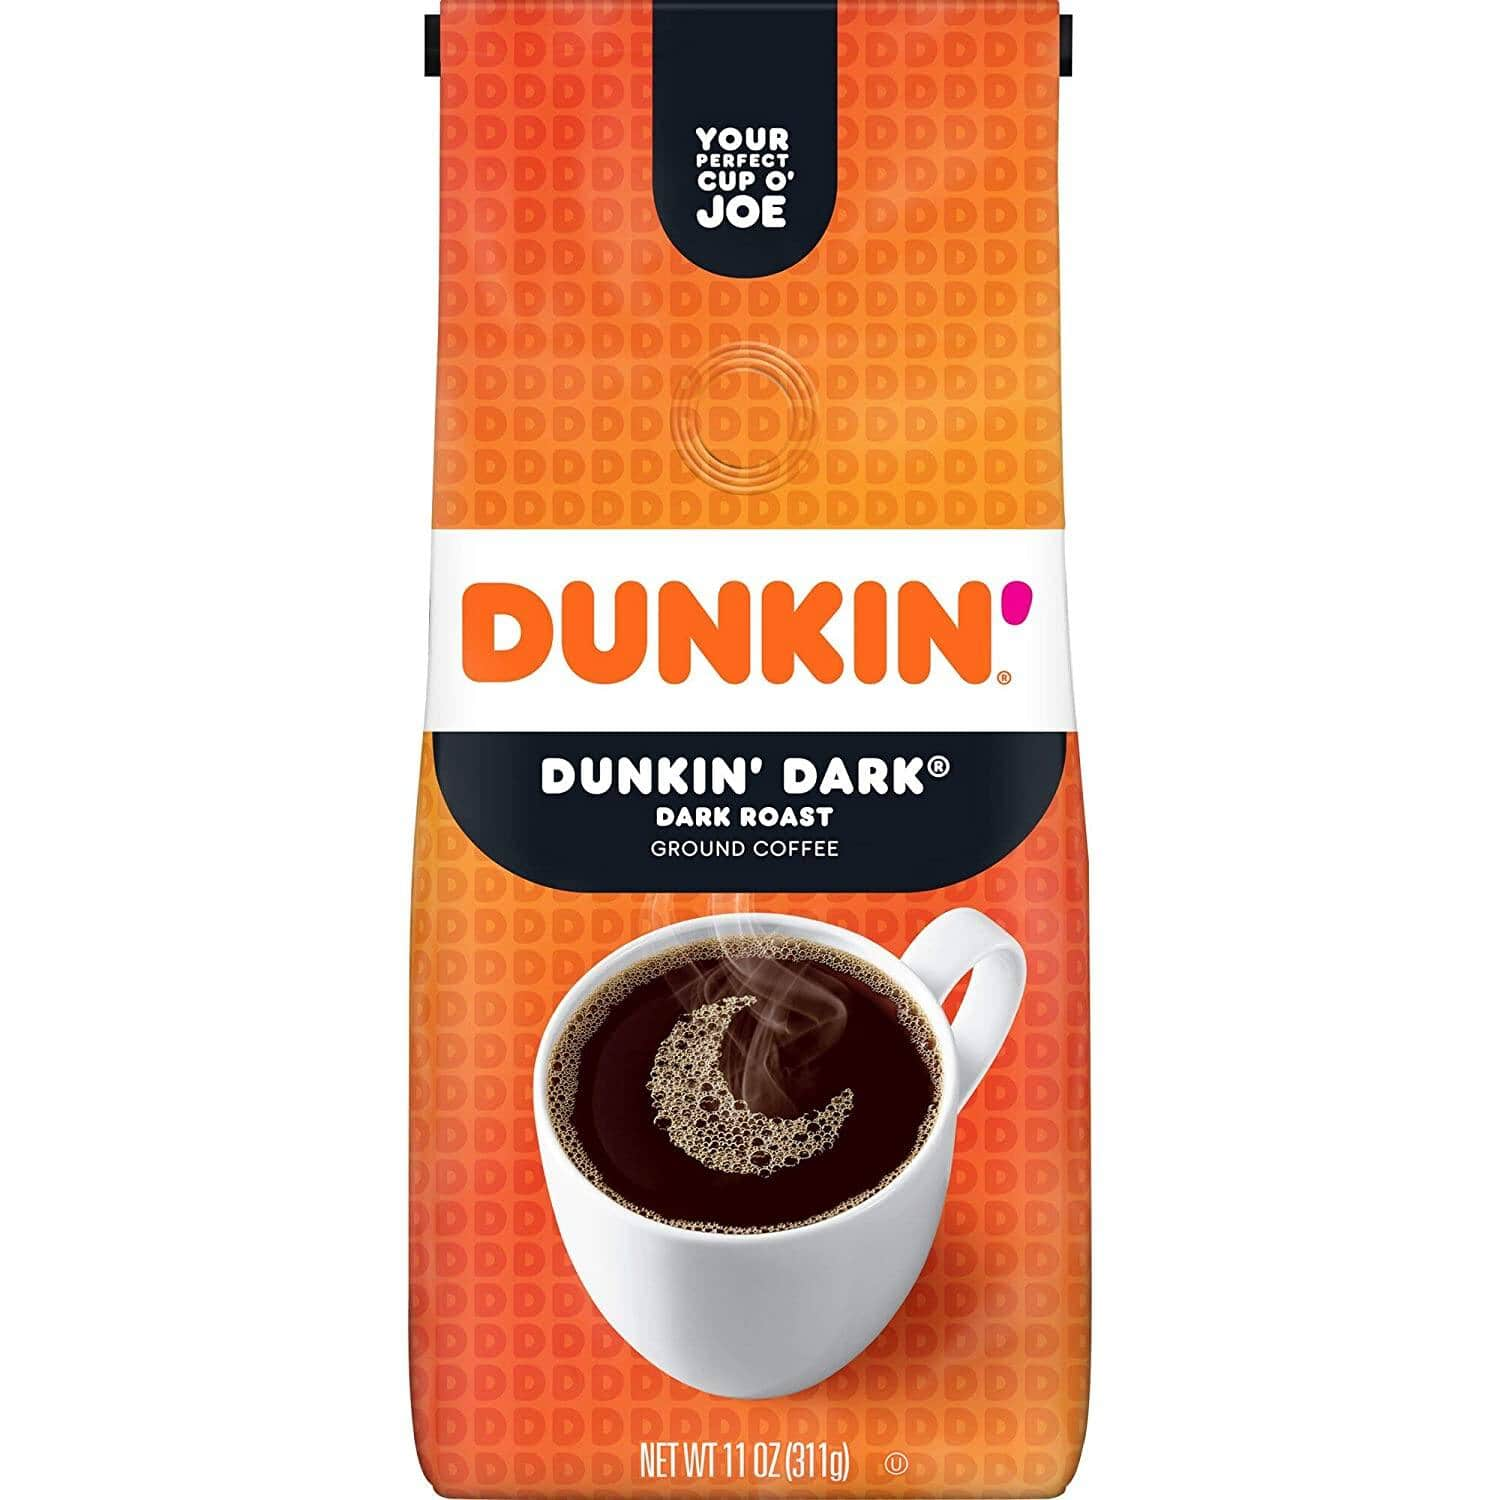 11-Oz Dunkin' Dark Roast Ground Coffee $3.70 w/ Subscribe & Save